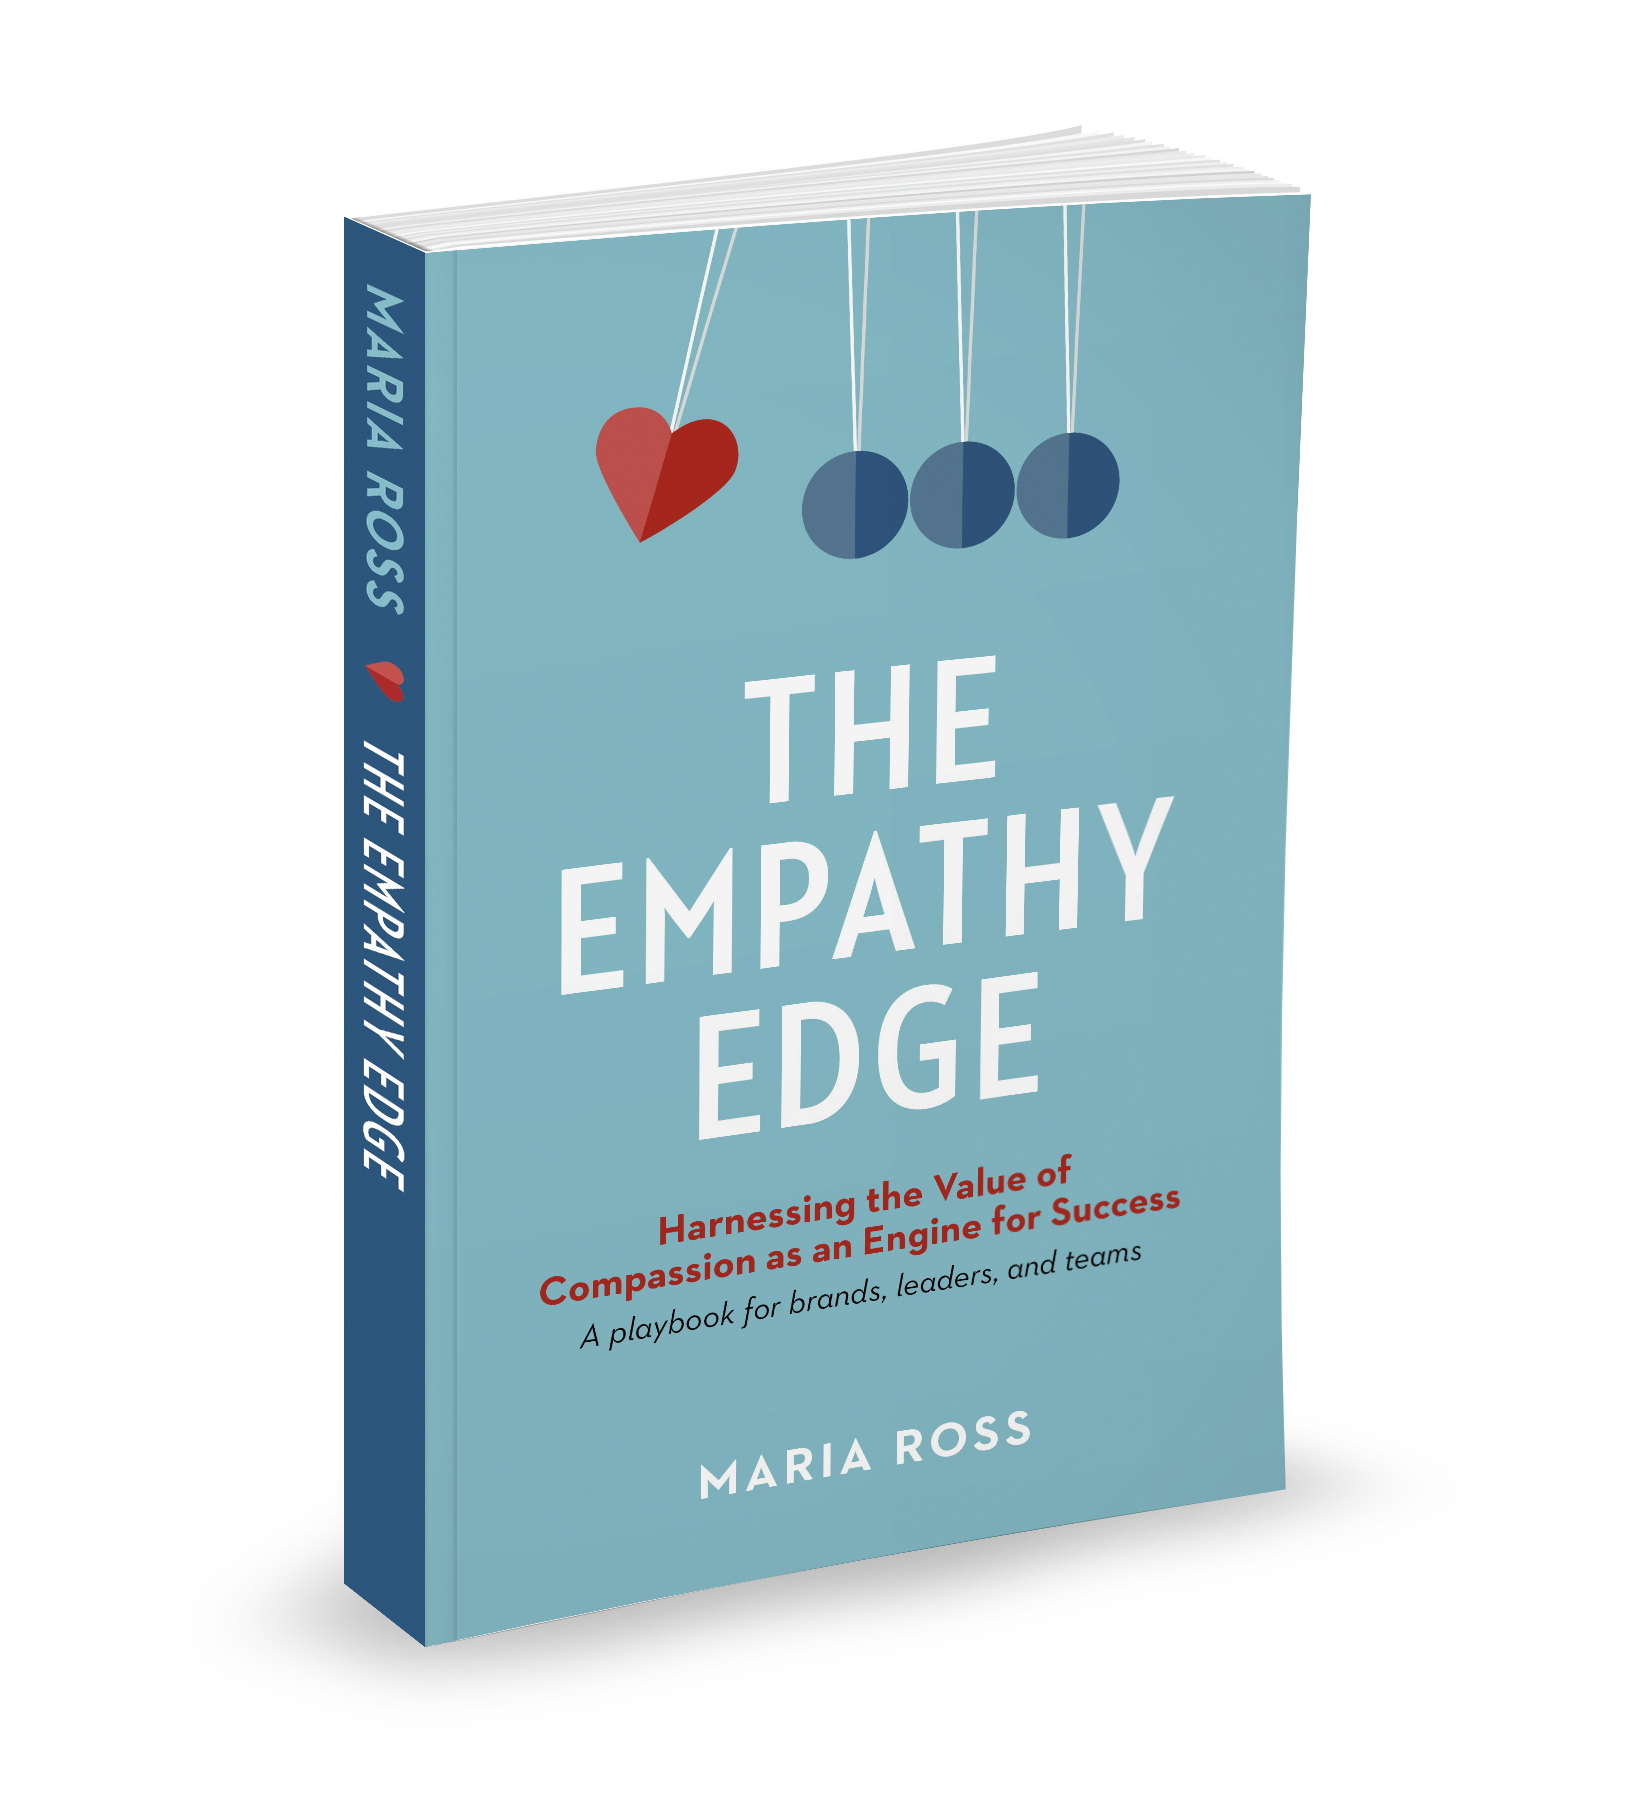 The Empathy Edge book cover